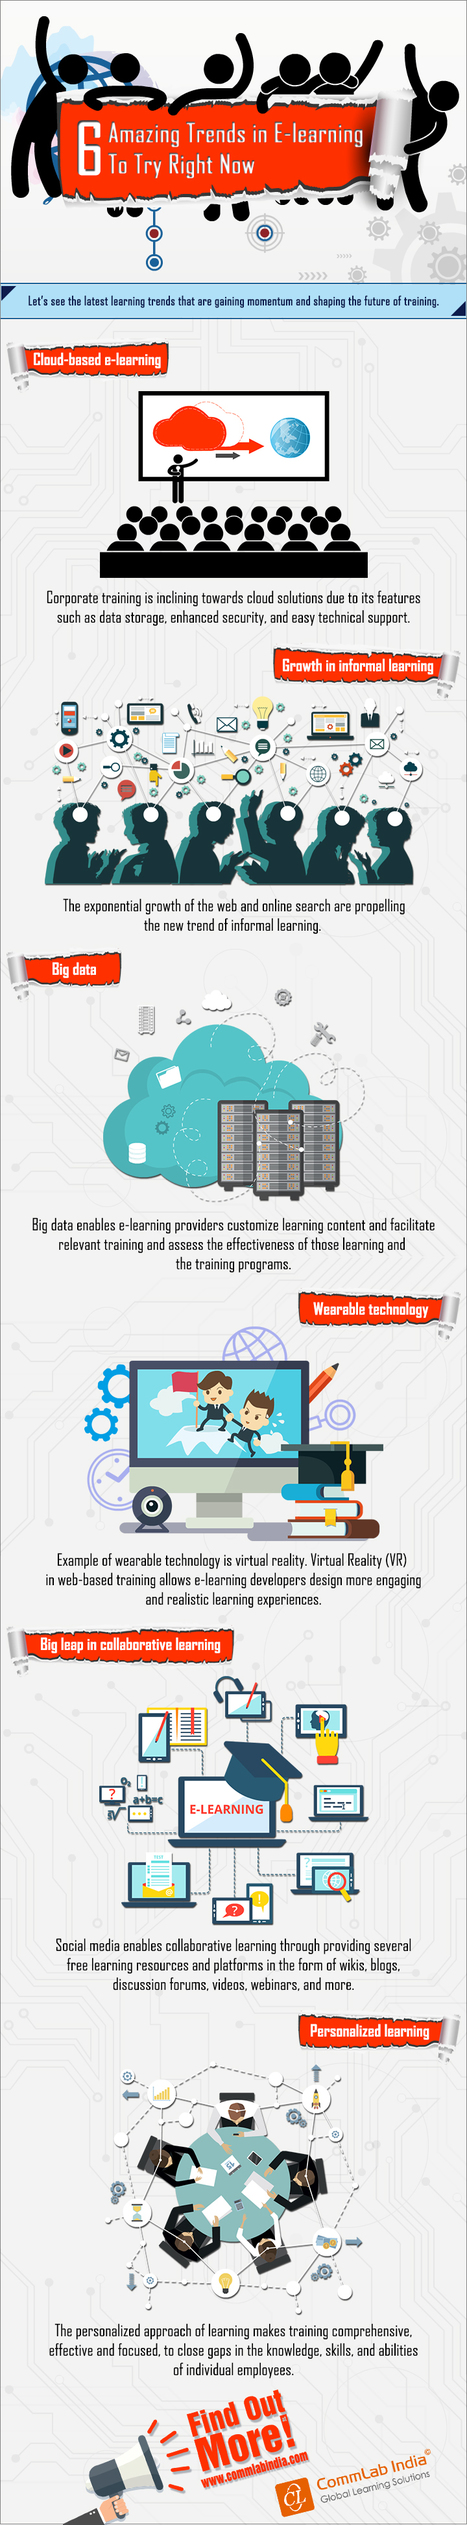 6 Amazing Trends in E-learning to Try Right Now [Infographic] | eLearning Infographics | Scoop.it